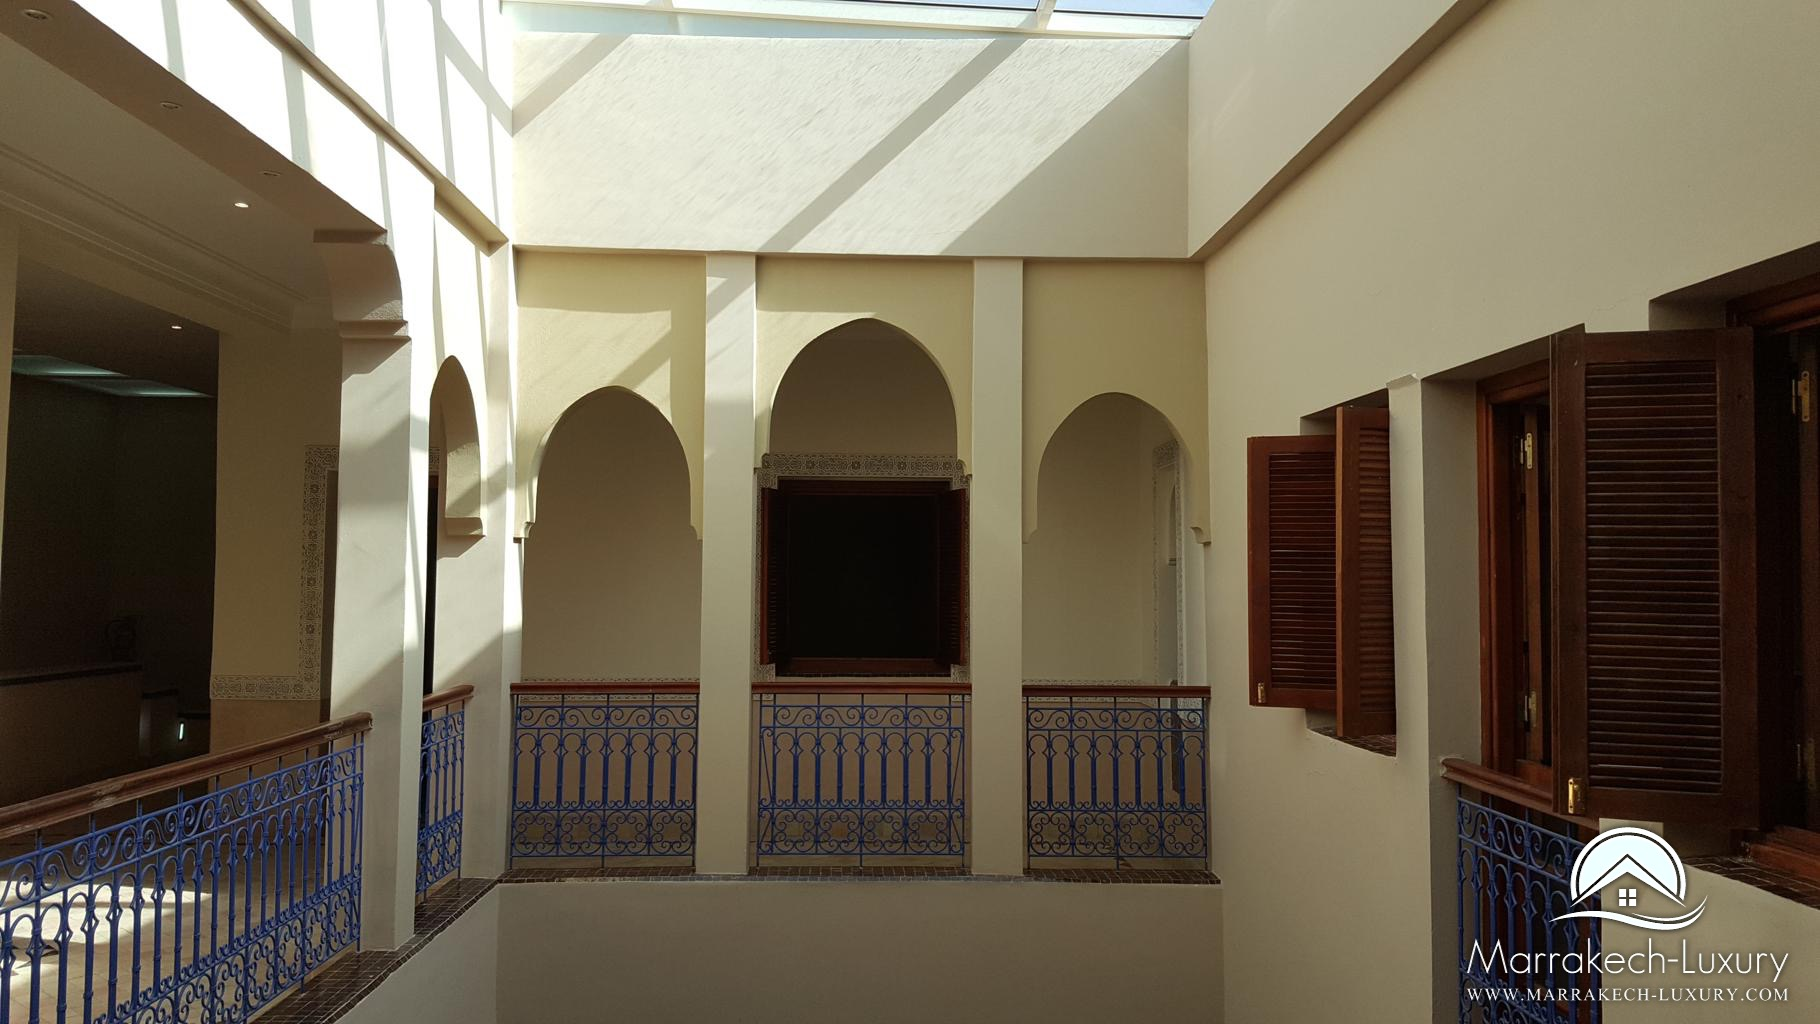 Riaavmed1030 37 agence immobili re marrakech acheter for Agence immobiliere 37